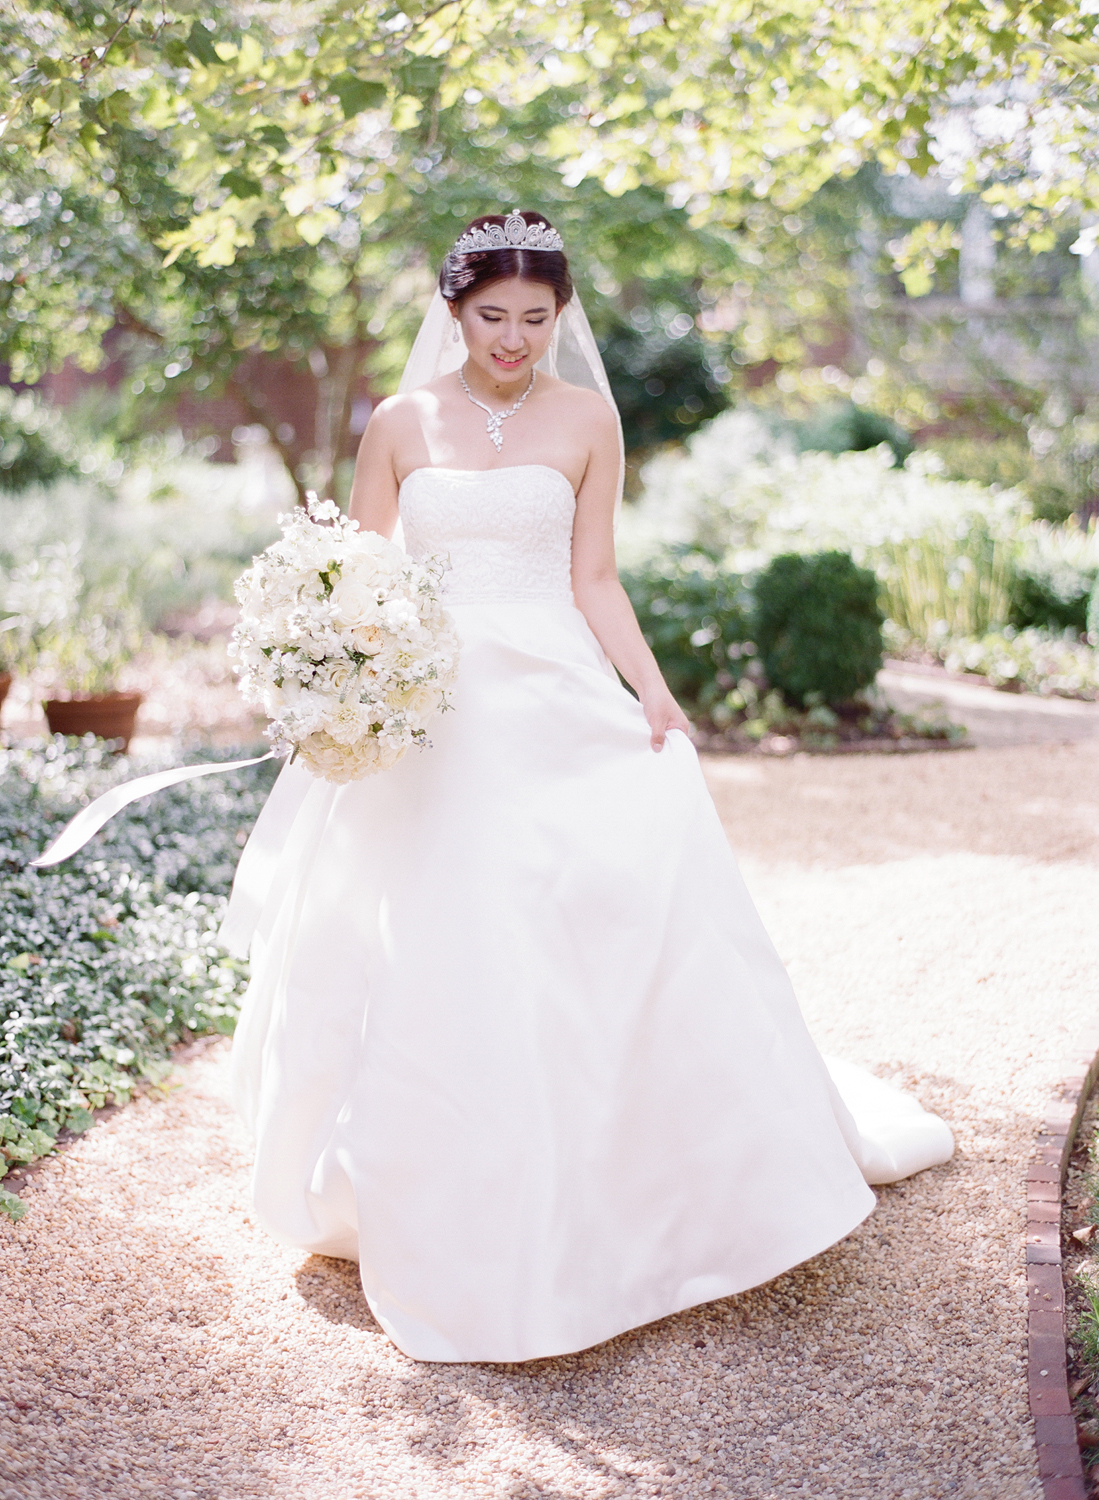 dumbarton garden wedding photos, washington dc